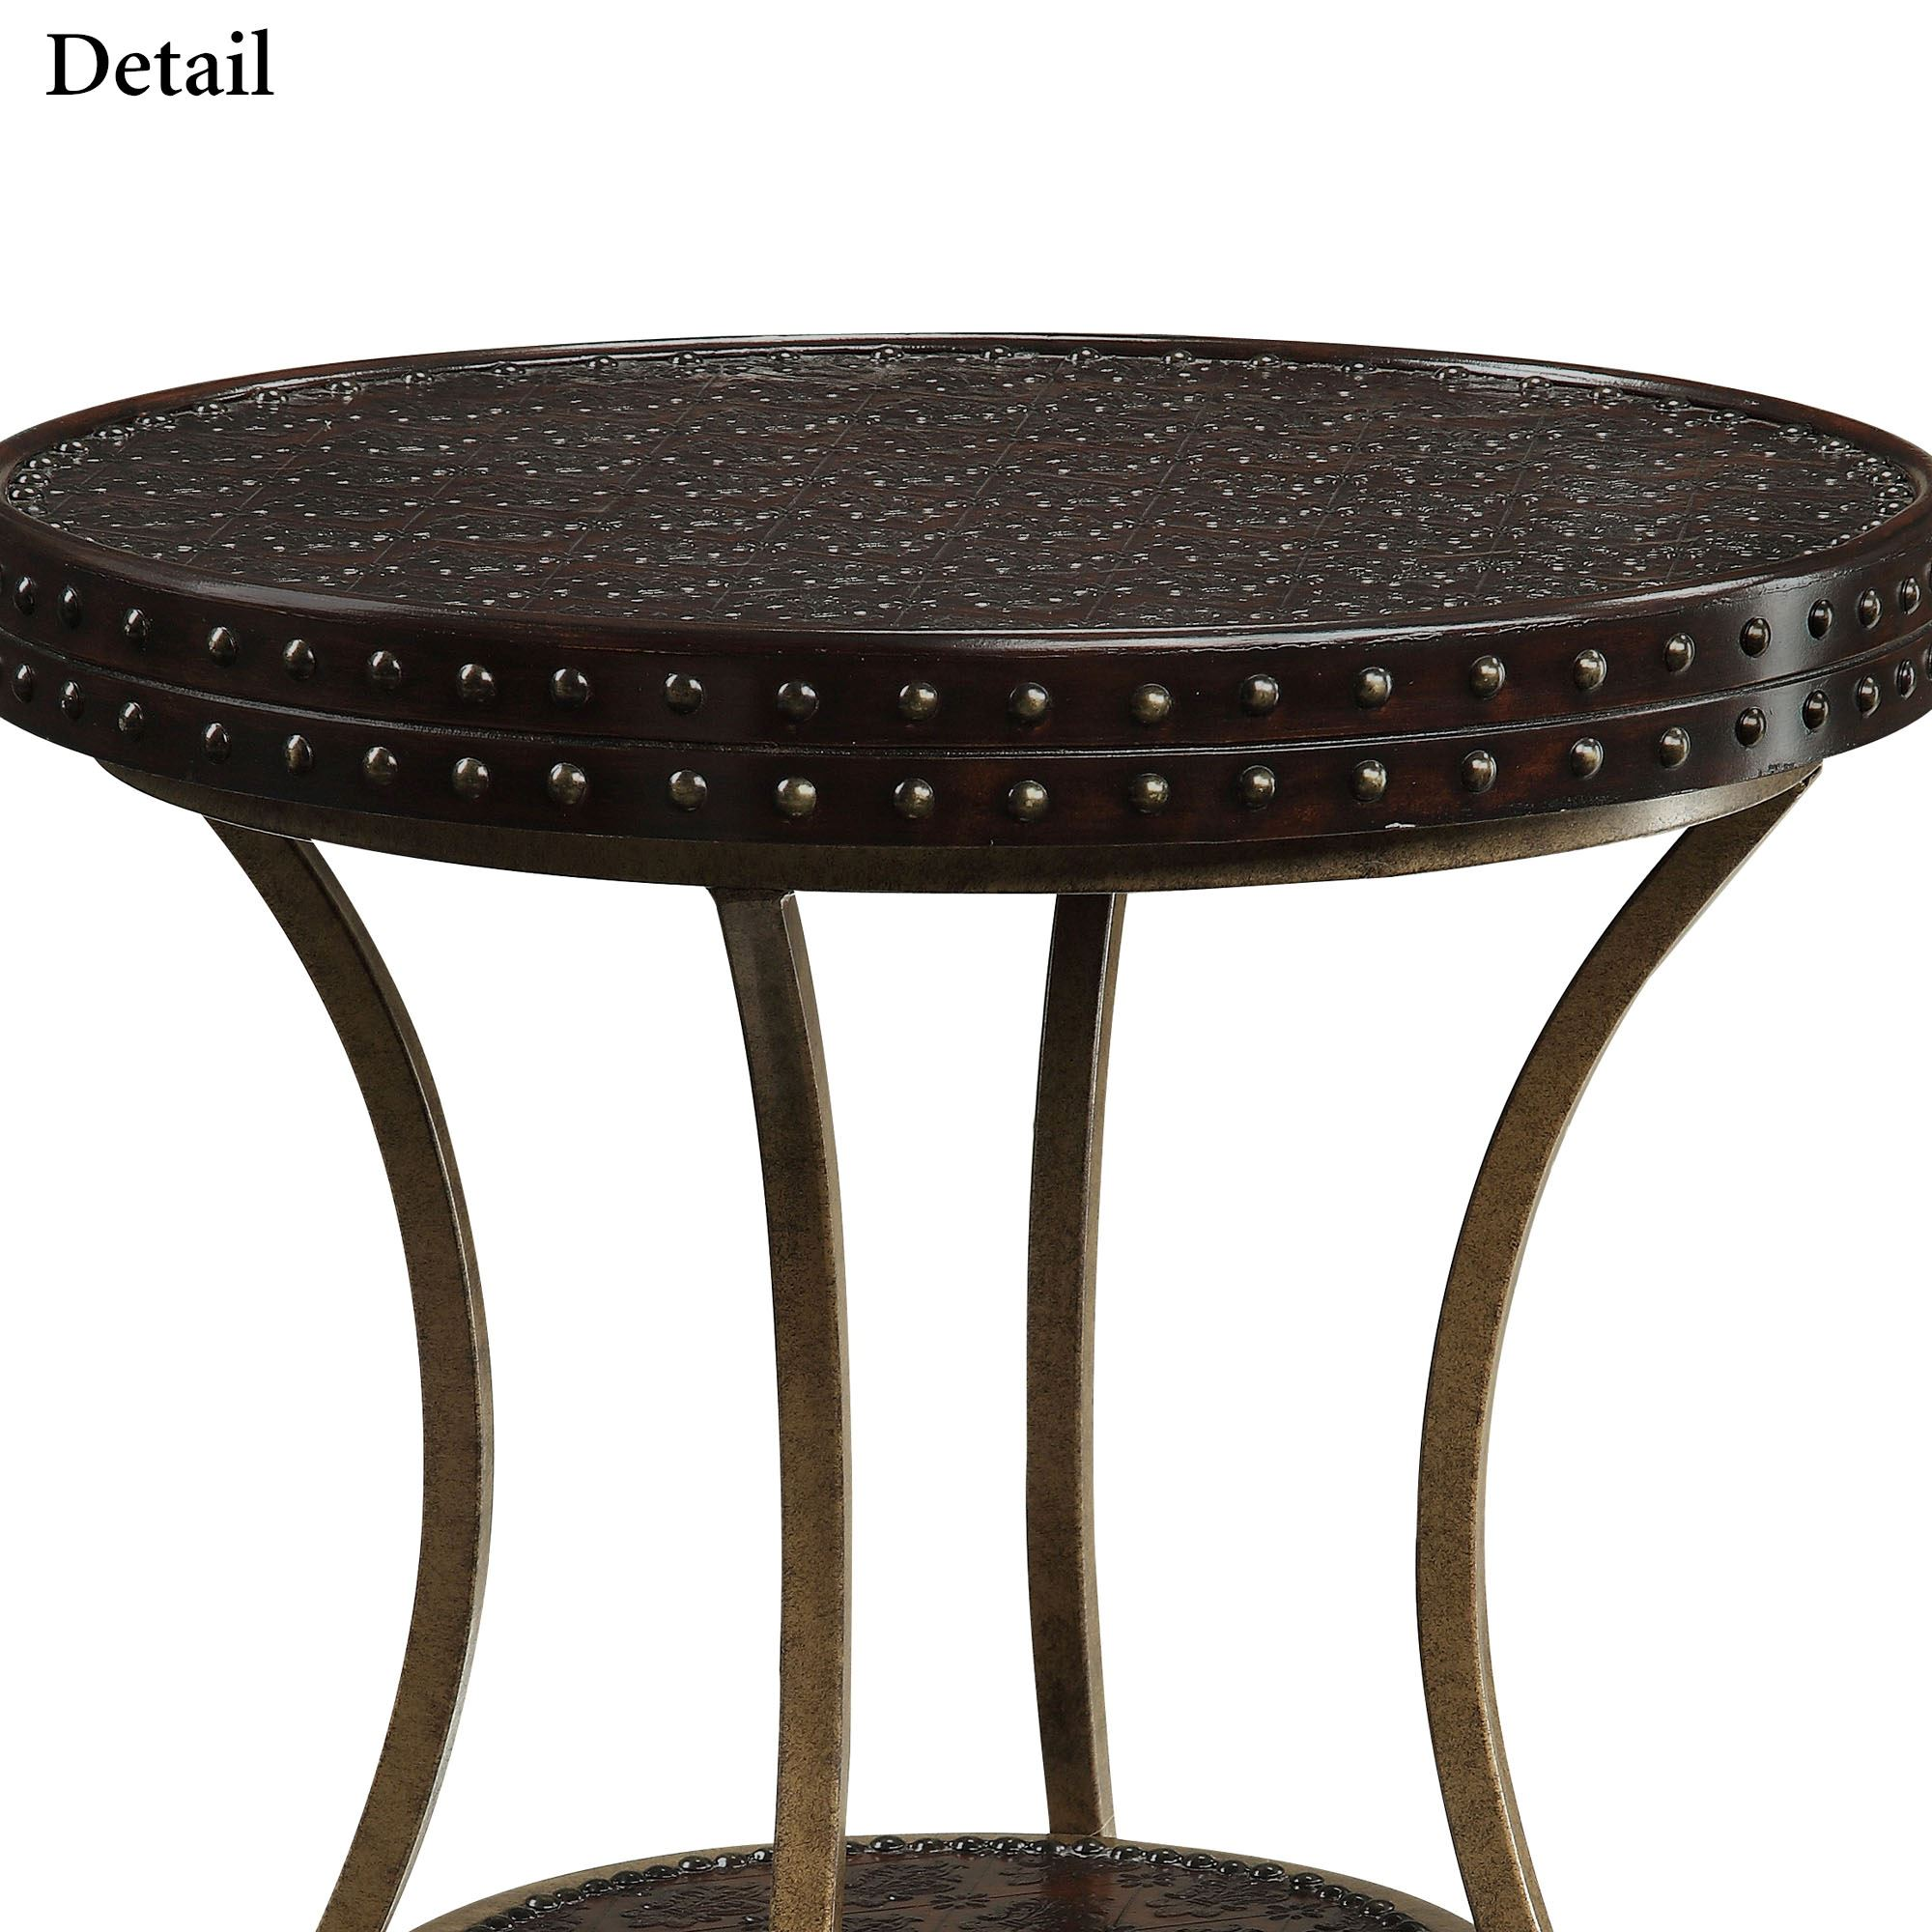 baylor round metal accent table black gold target tall half circle coffee pub style kitchen wood dining room furniture pottery barn kids chairs marble toronto mid century legs